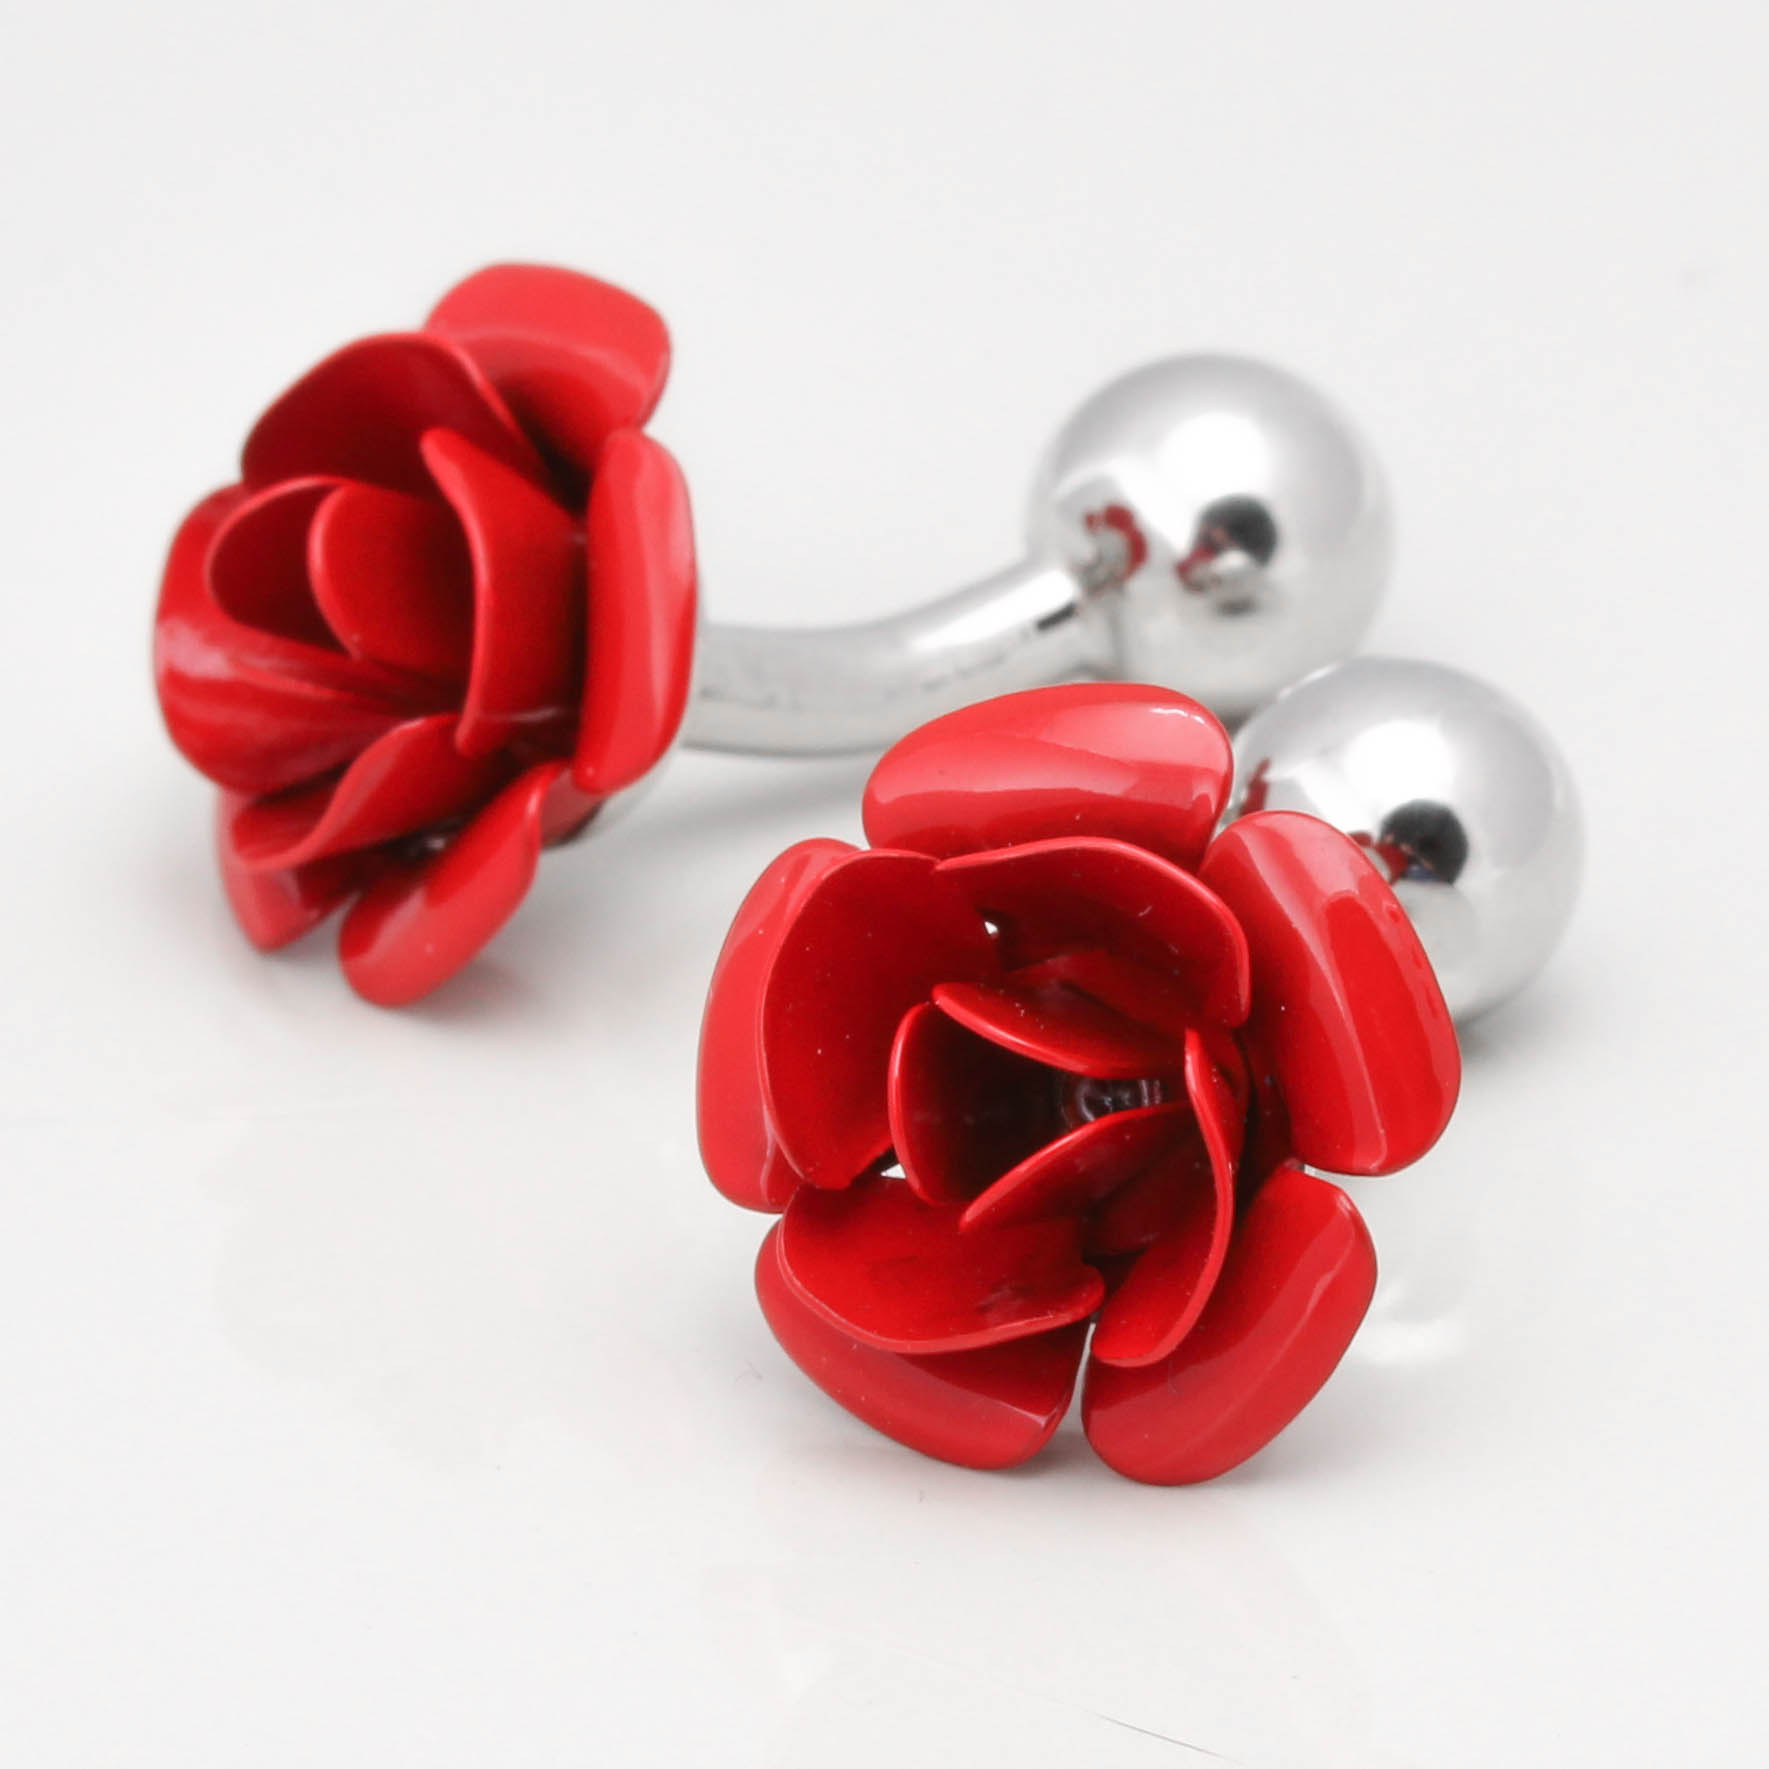 Rose Cufflinks Flower Red With Crystal Cuff Links